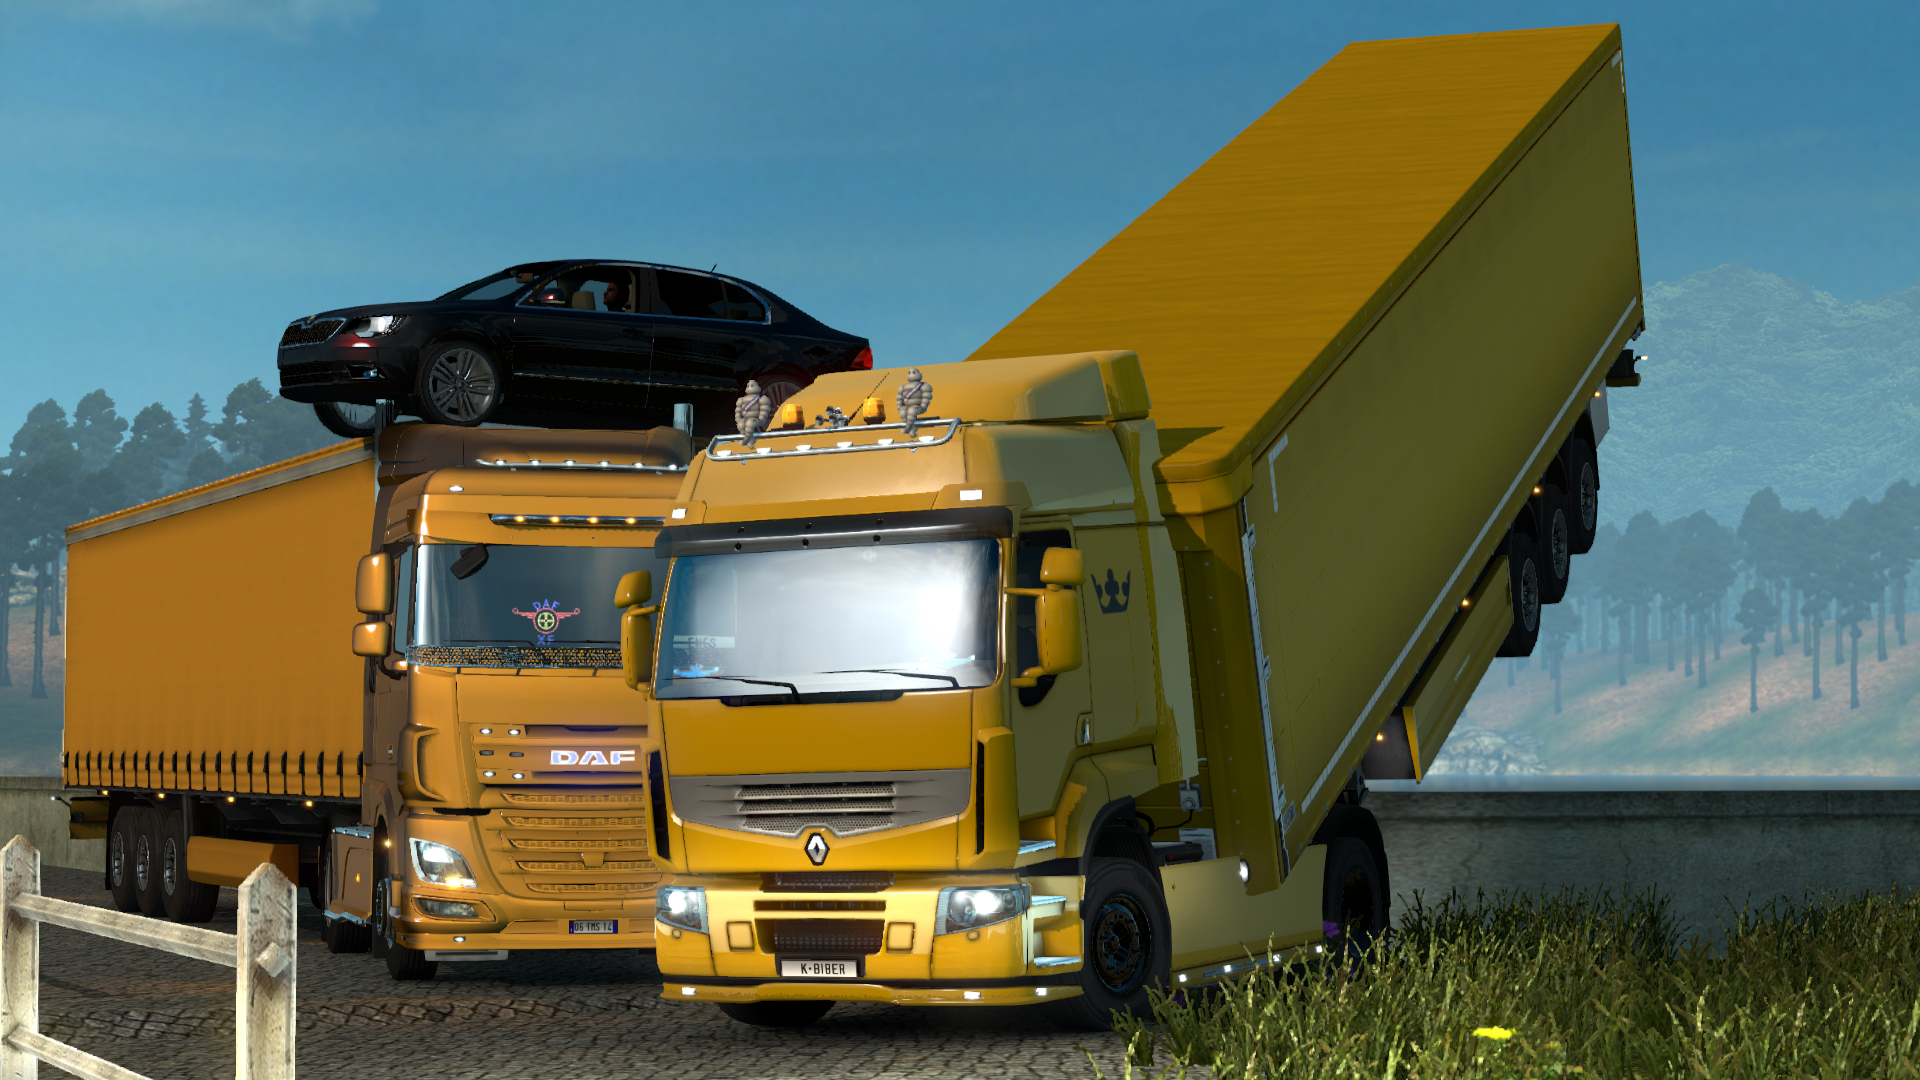 ets2_20180815_233424_00.png